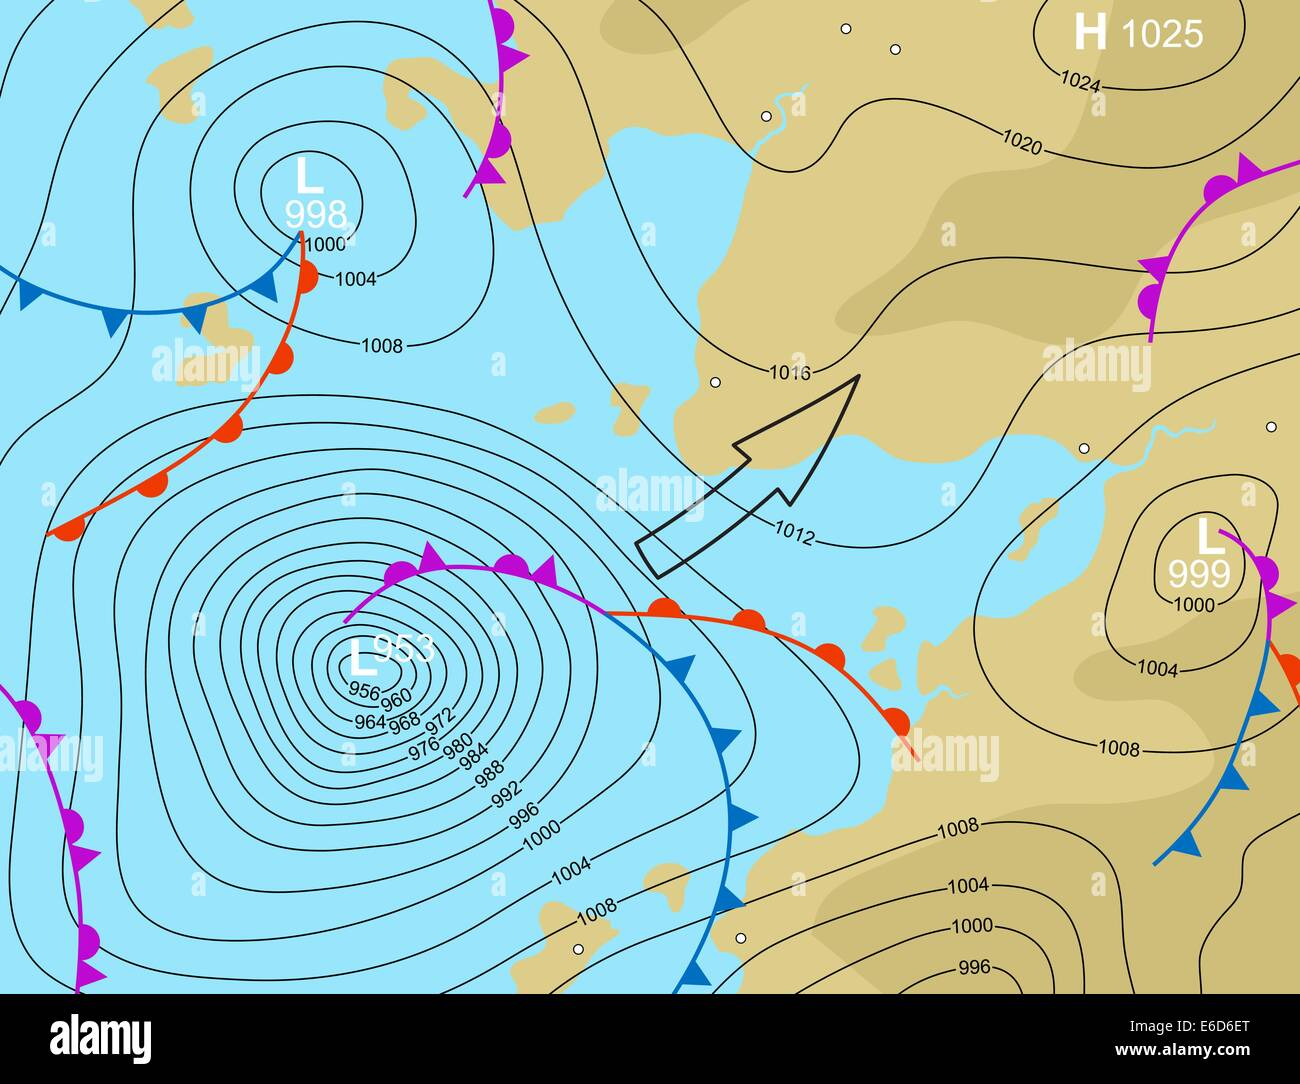 Editable vector illustration of a generic weather map showing a storm depression - Stock Image